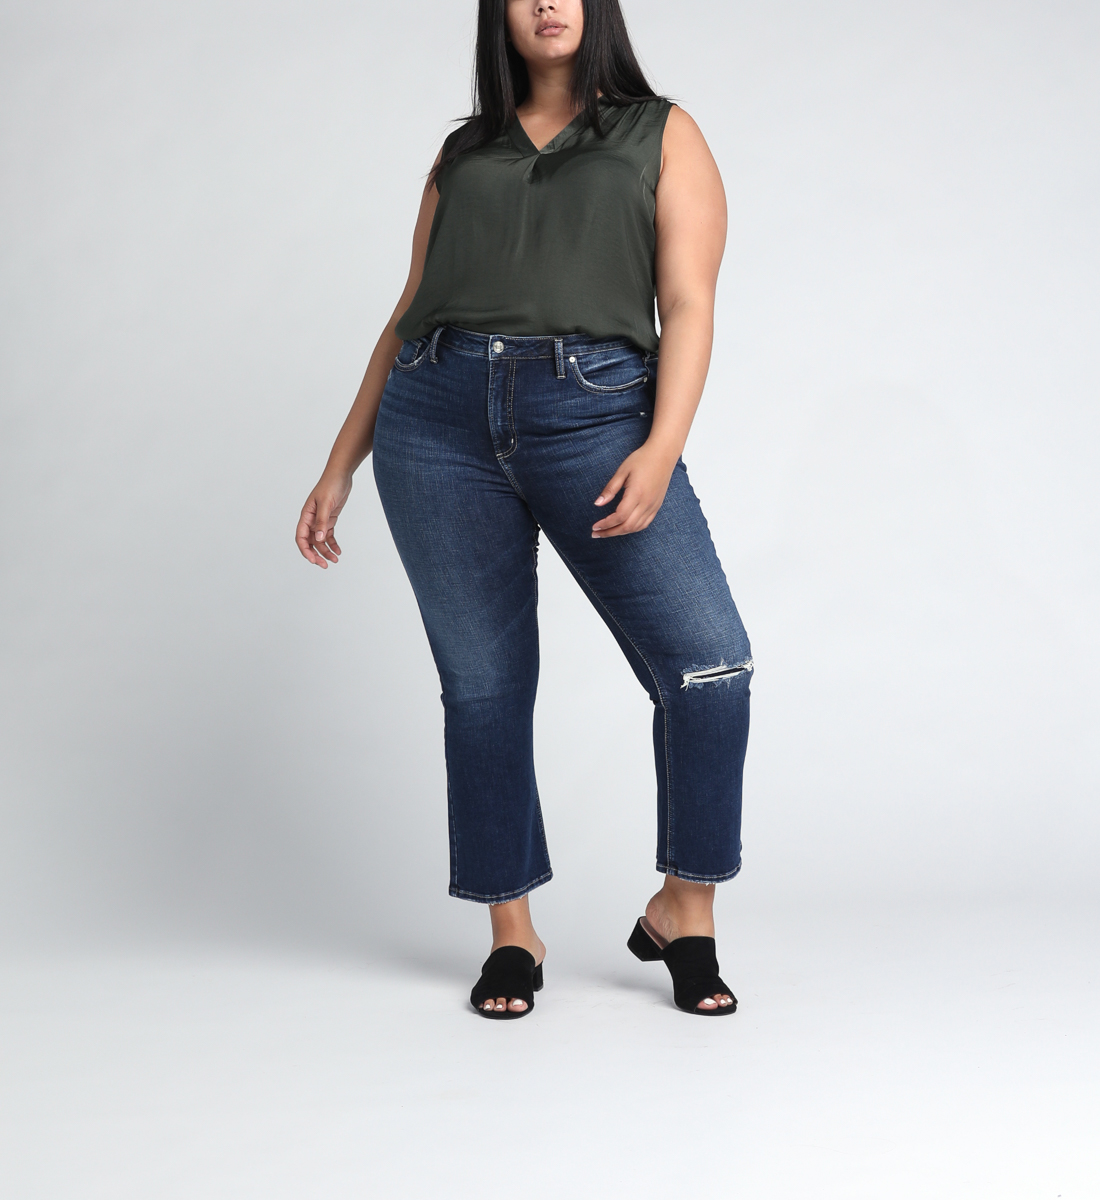 High Note High Rise Boot Crop Jeans Plus Size Alt Image 1